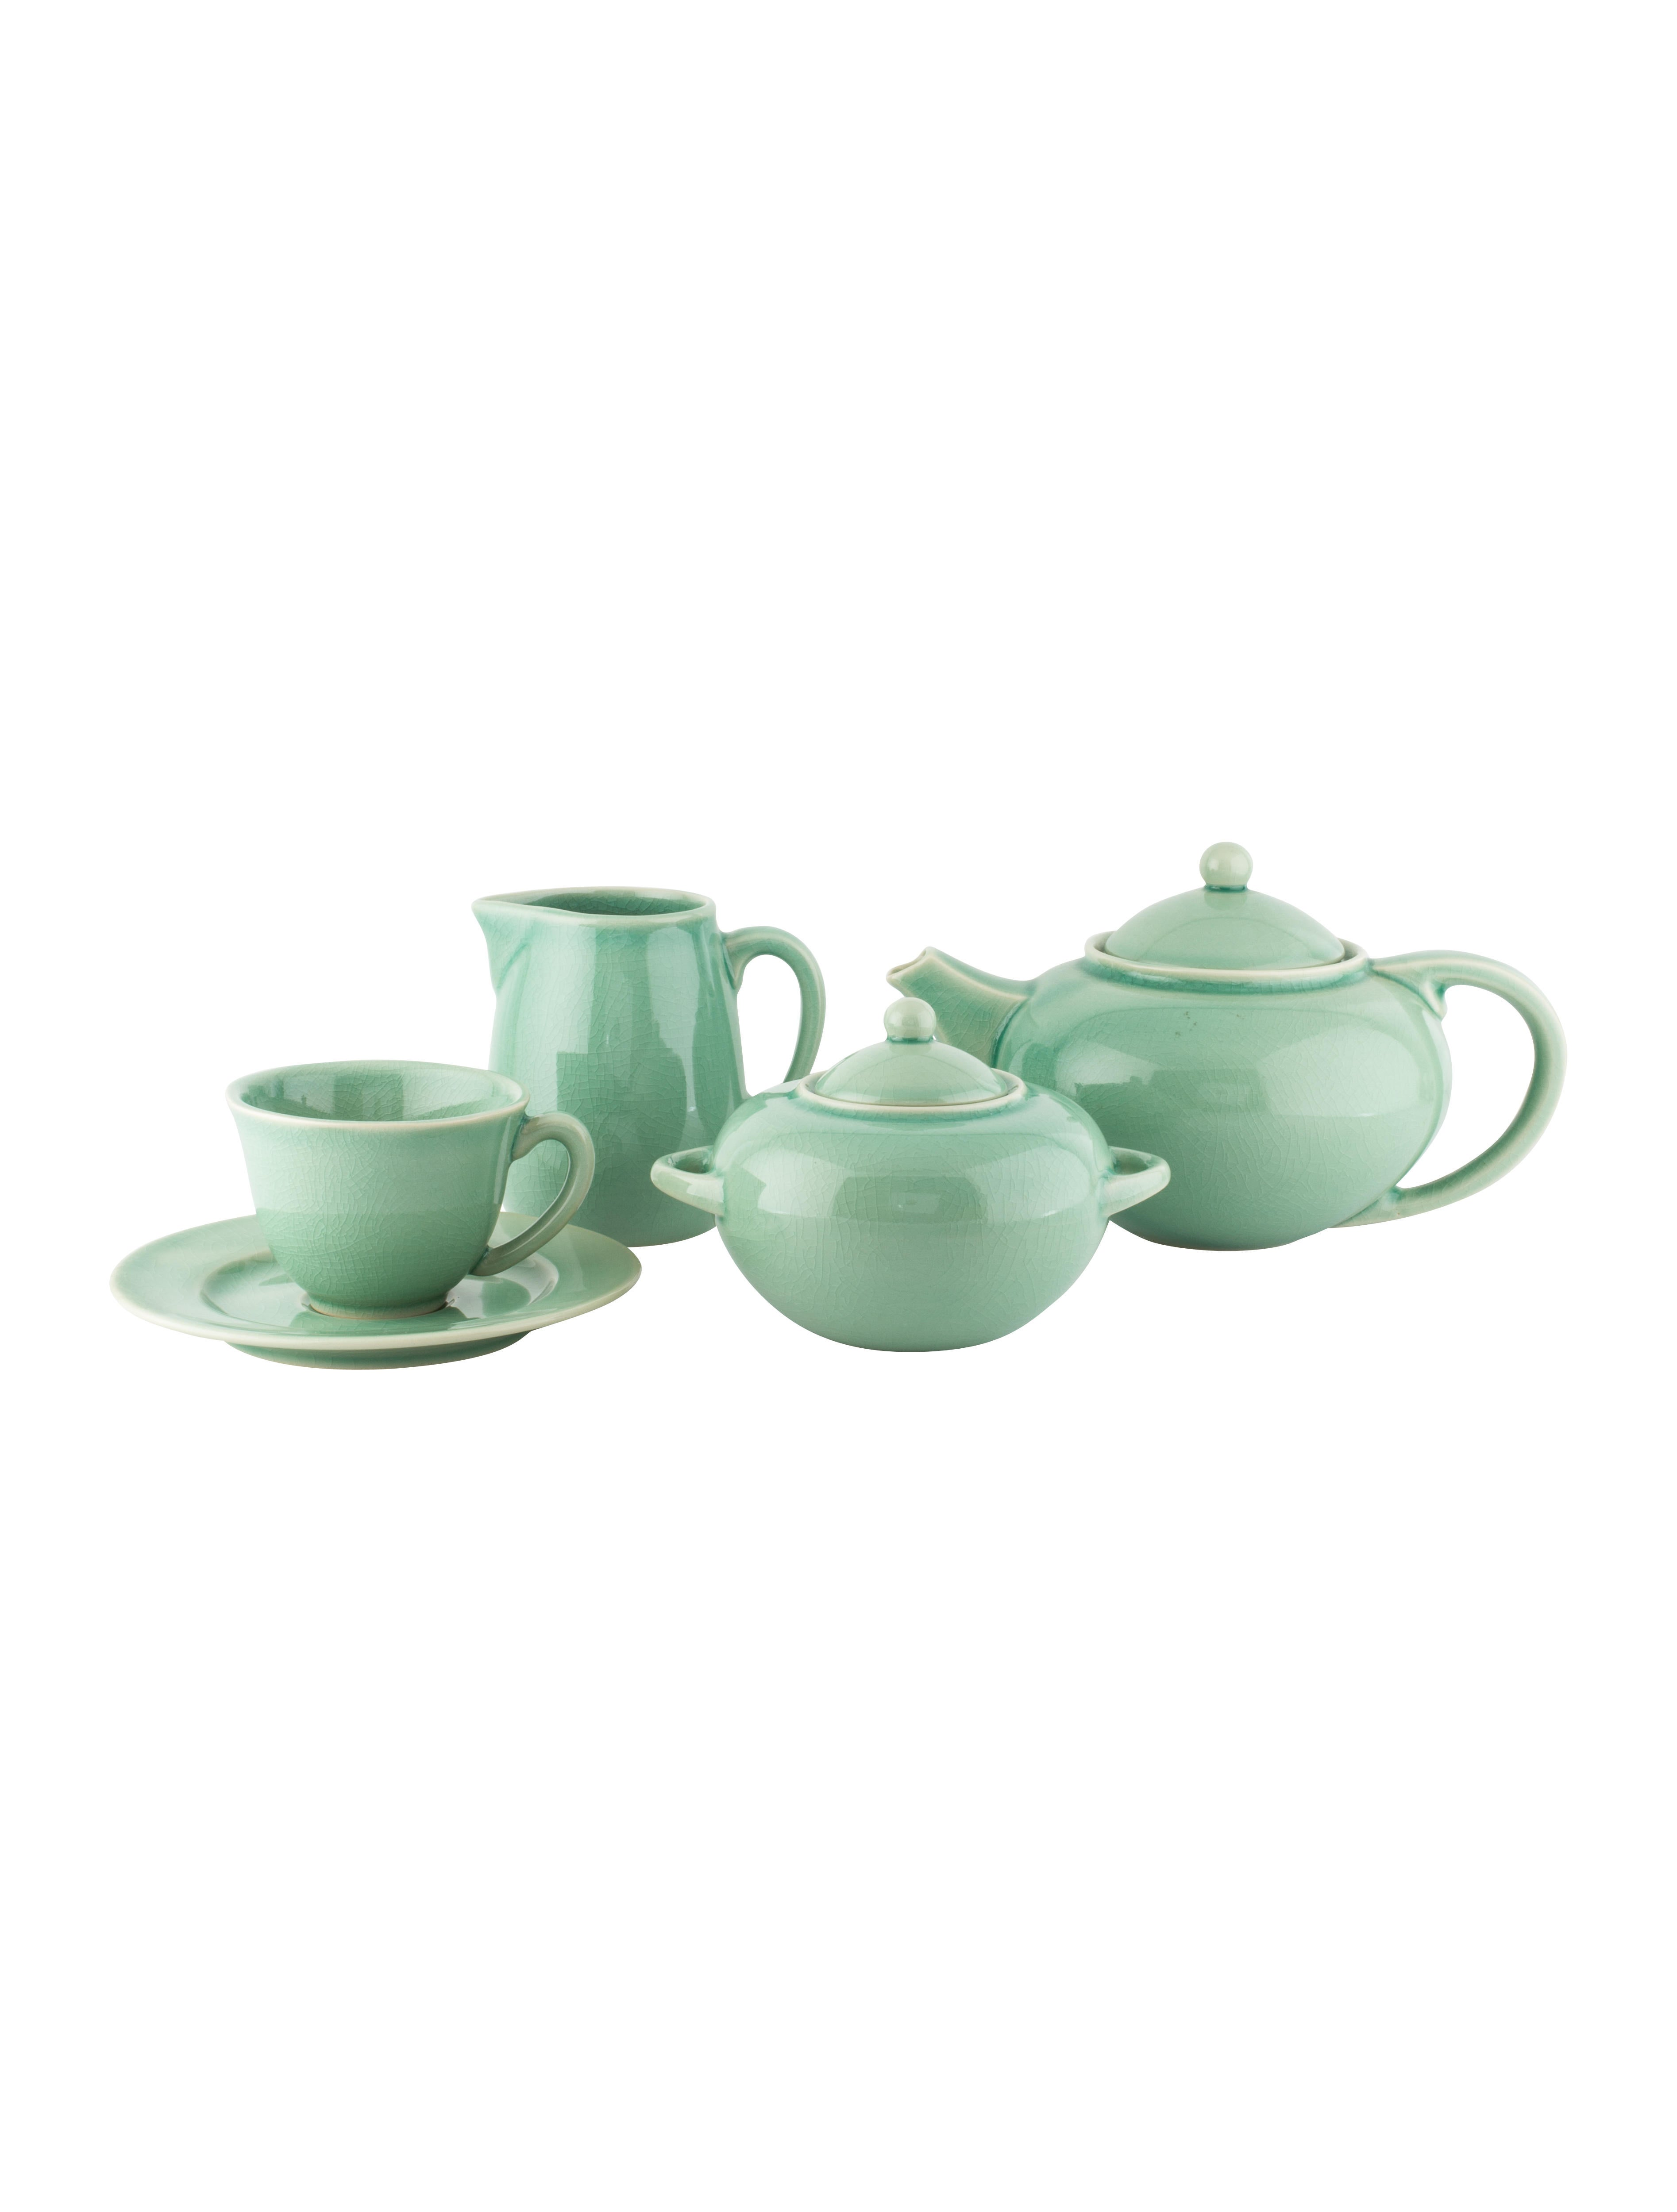 Jars France 21-Piece Ceramic Tea Set  sc 1 st  The RealReal & Jars France 21-Piece Ceramic Tea Set - Tabletop And Kitchen ...